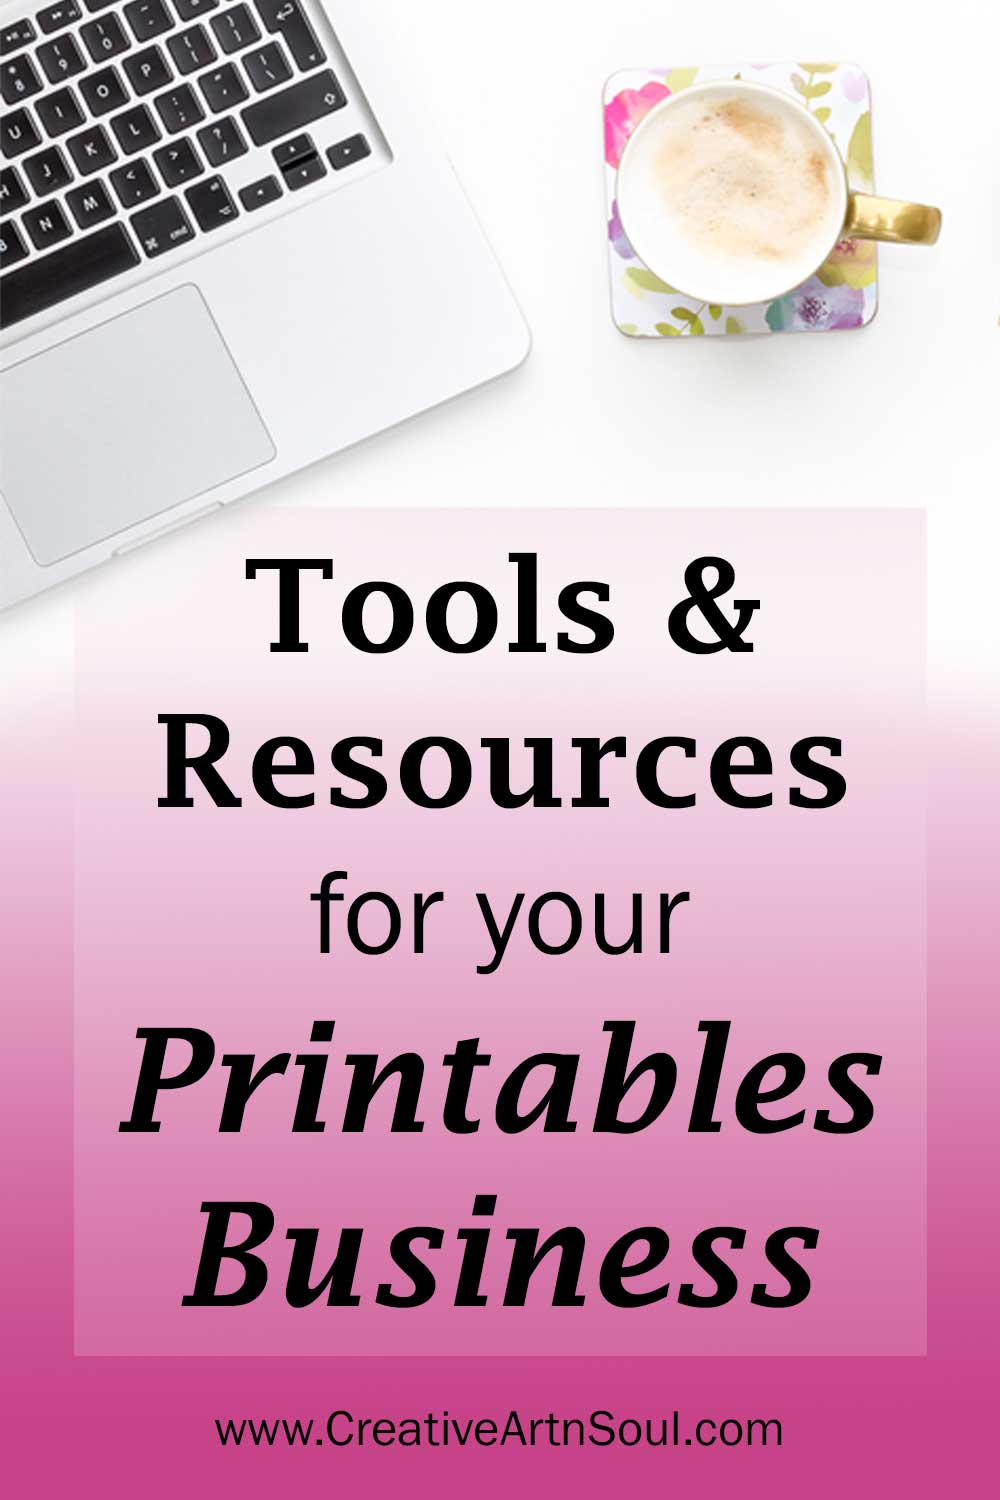 Tools & Resources for your Printables Business